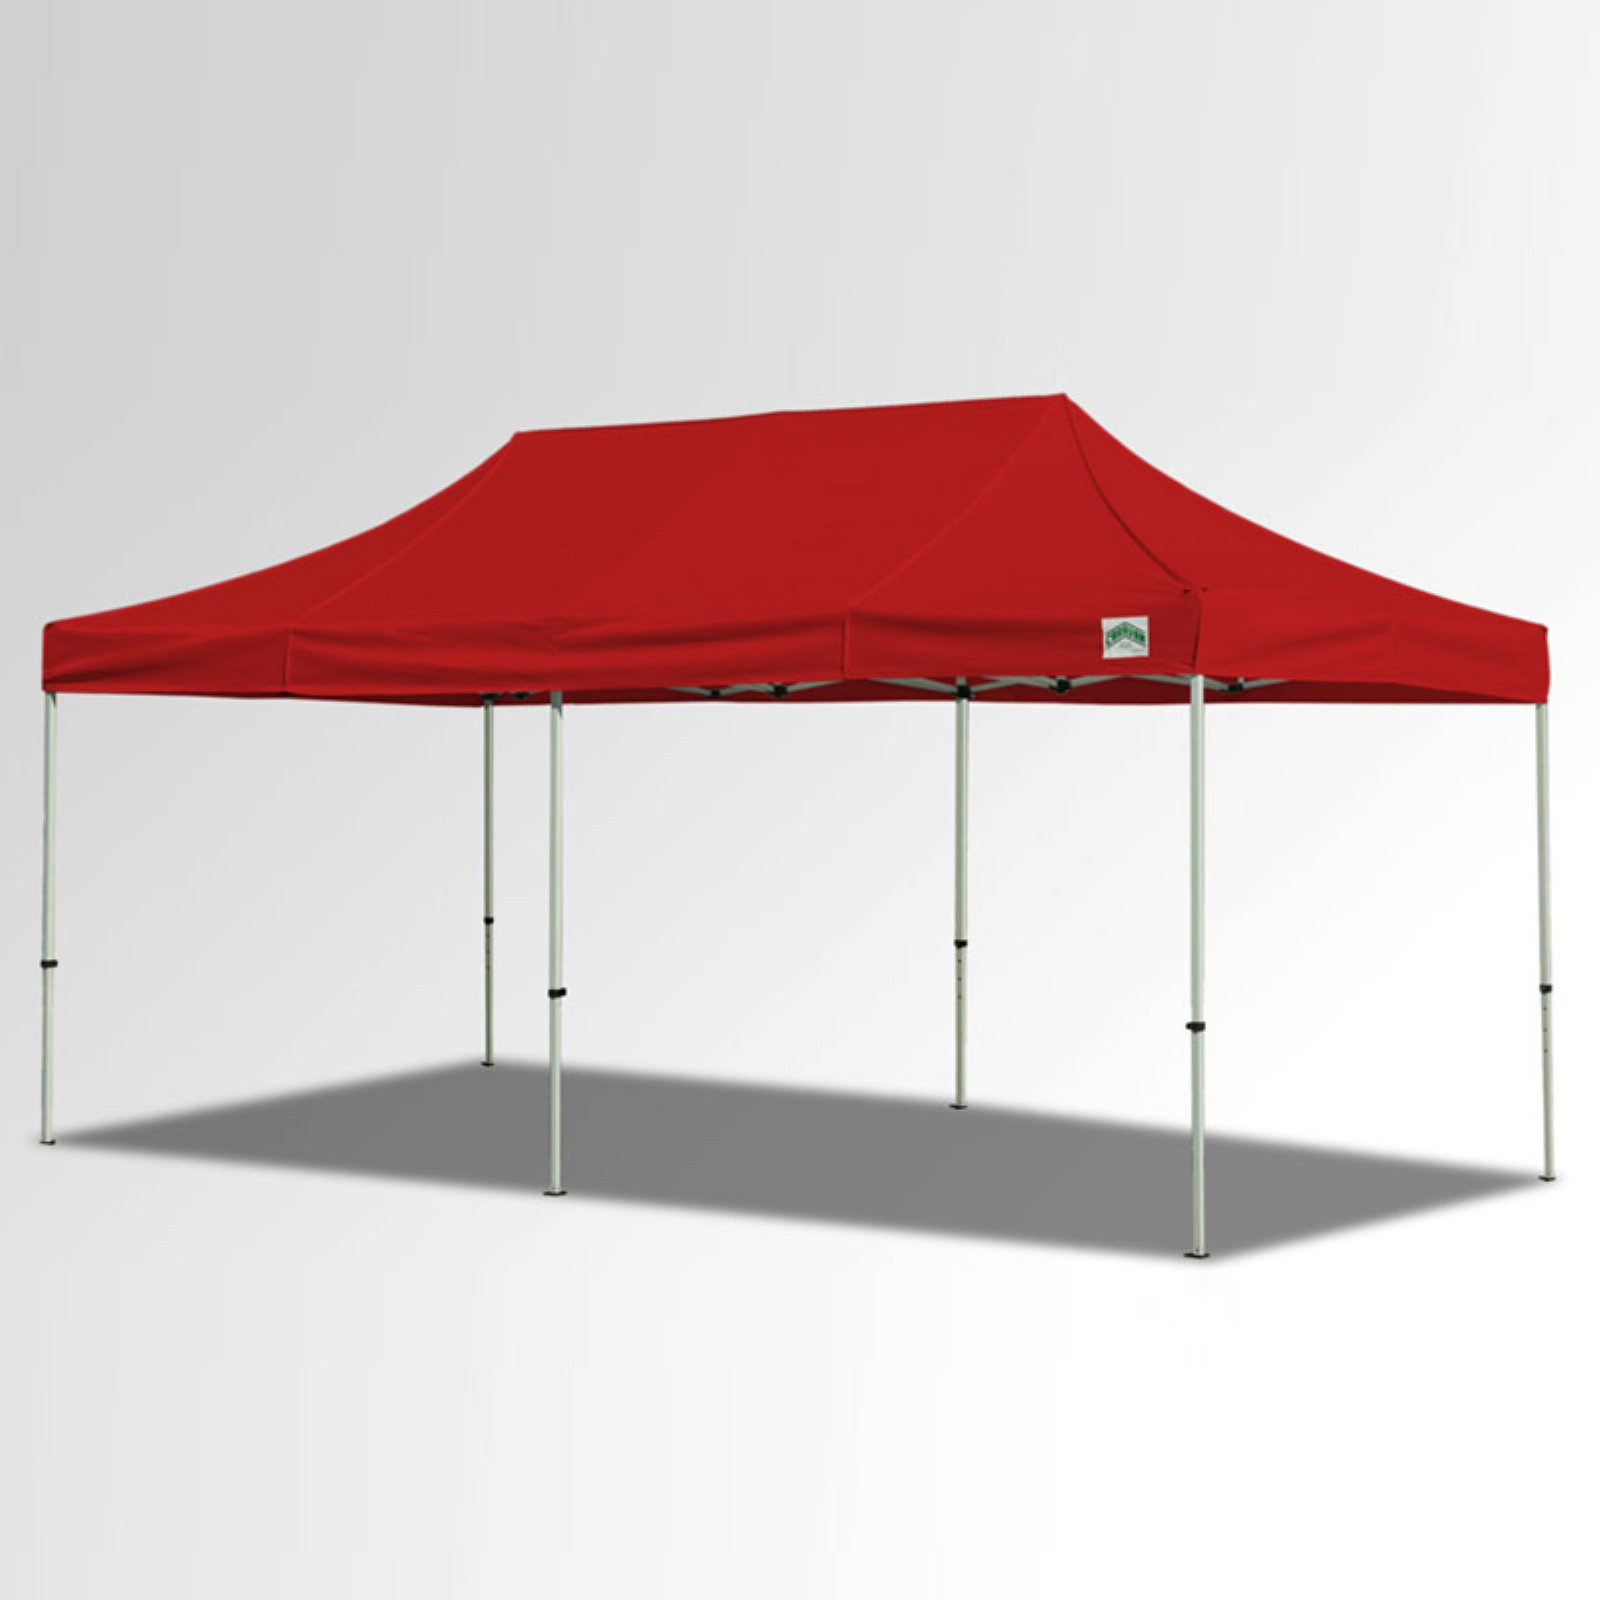 Caravan Sports 10x20 ft. Aluma 500 Denier Heavy Duty Commercial Canopy & Caravan Sports 10x20 ft. Aluma 500 Denier Heavy Duty Commercial ...